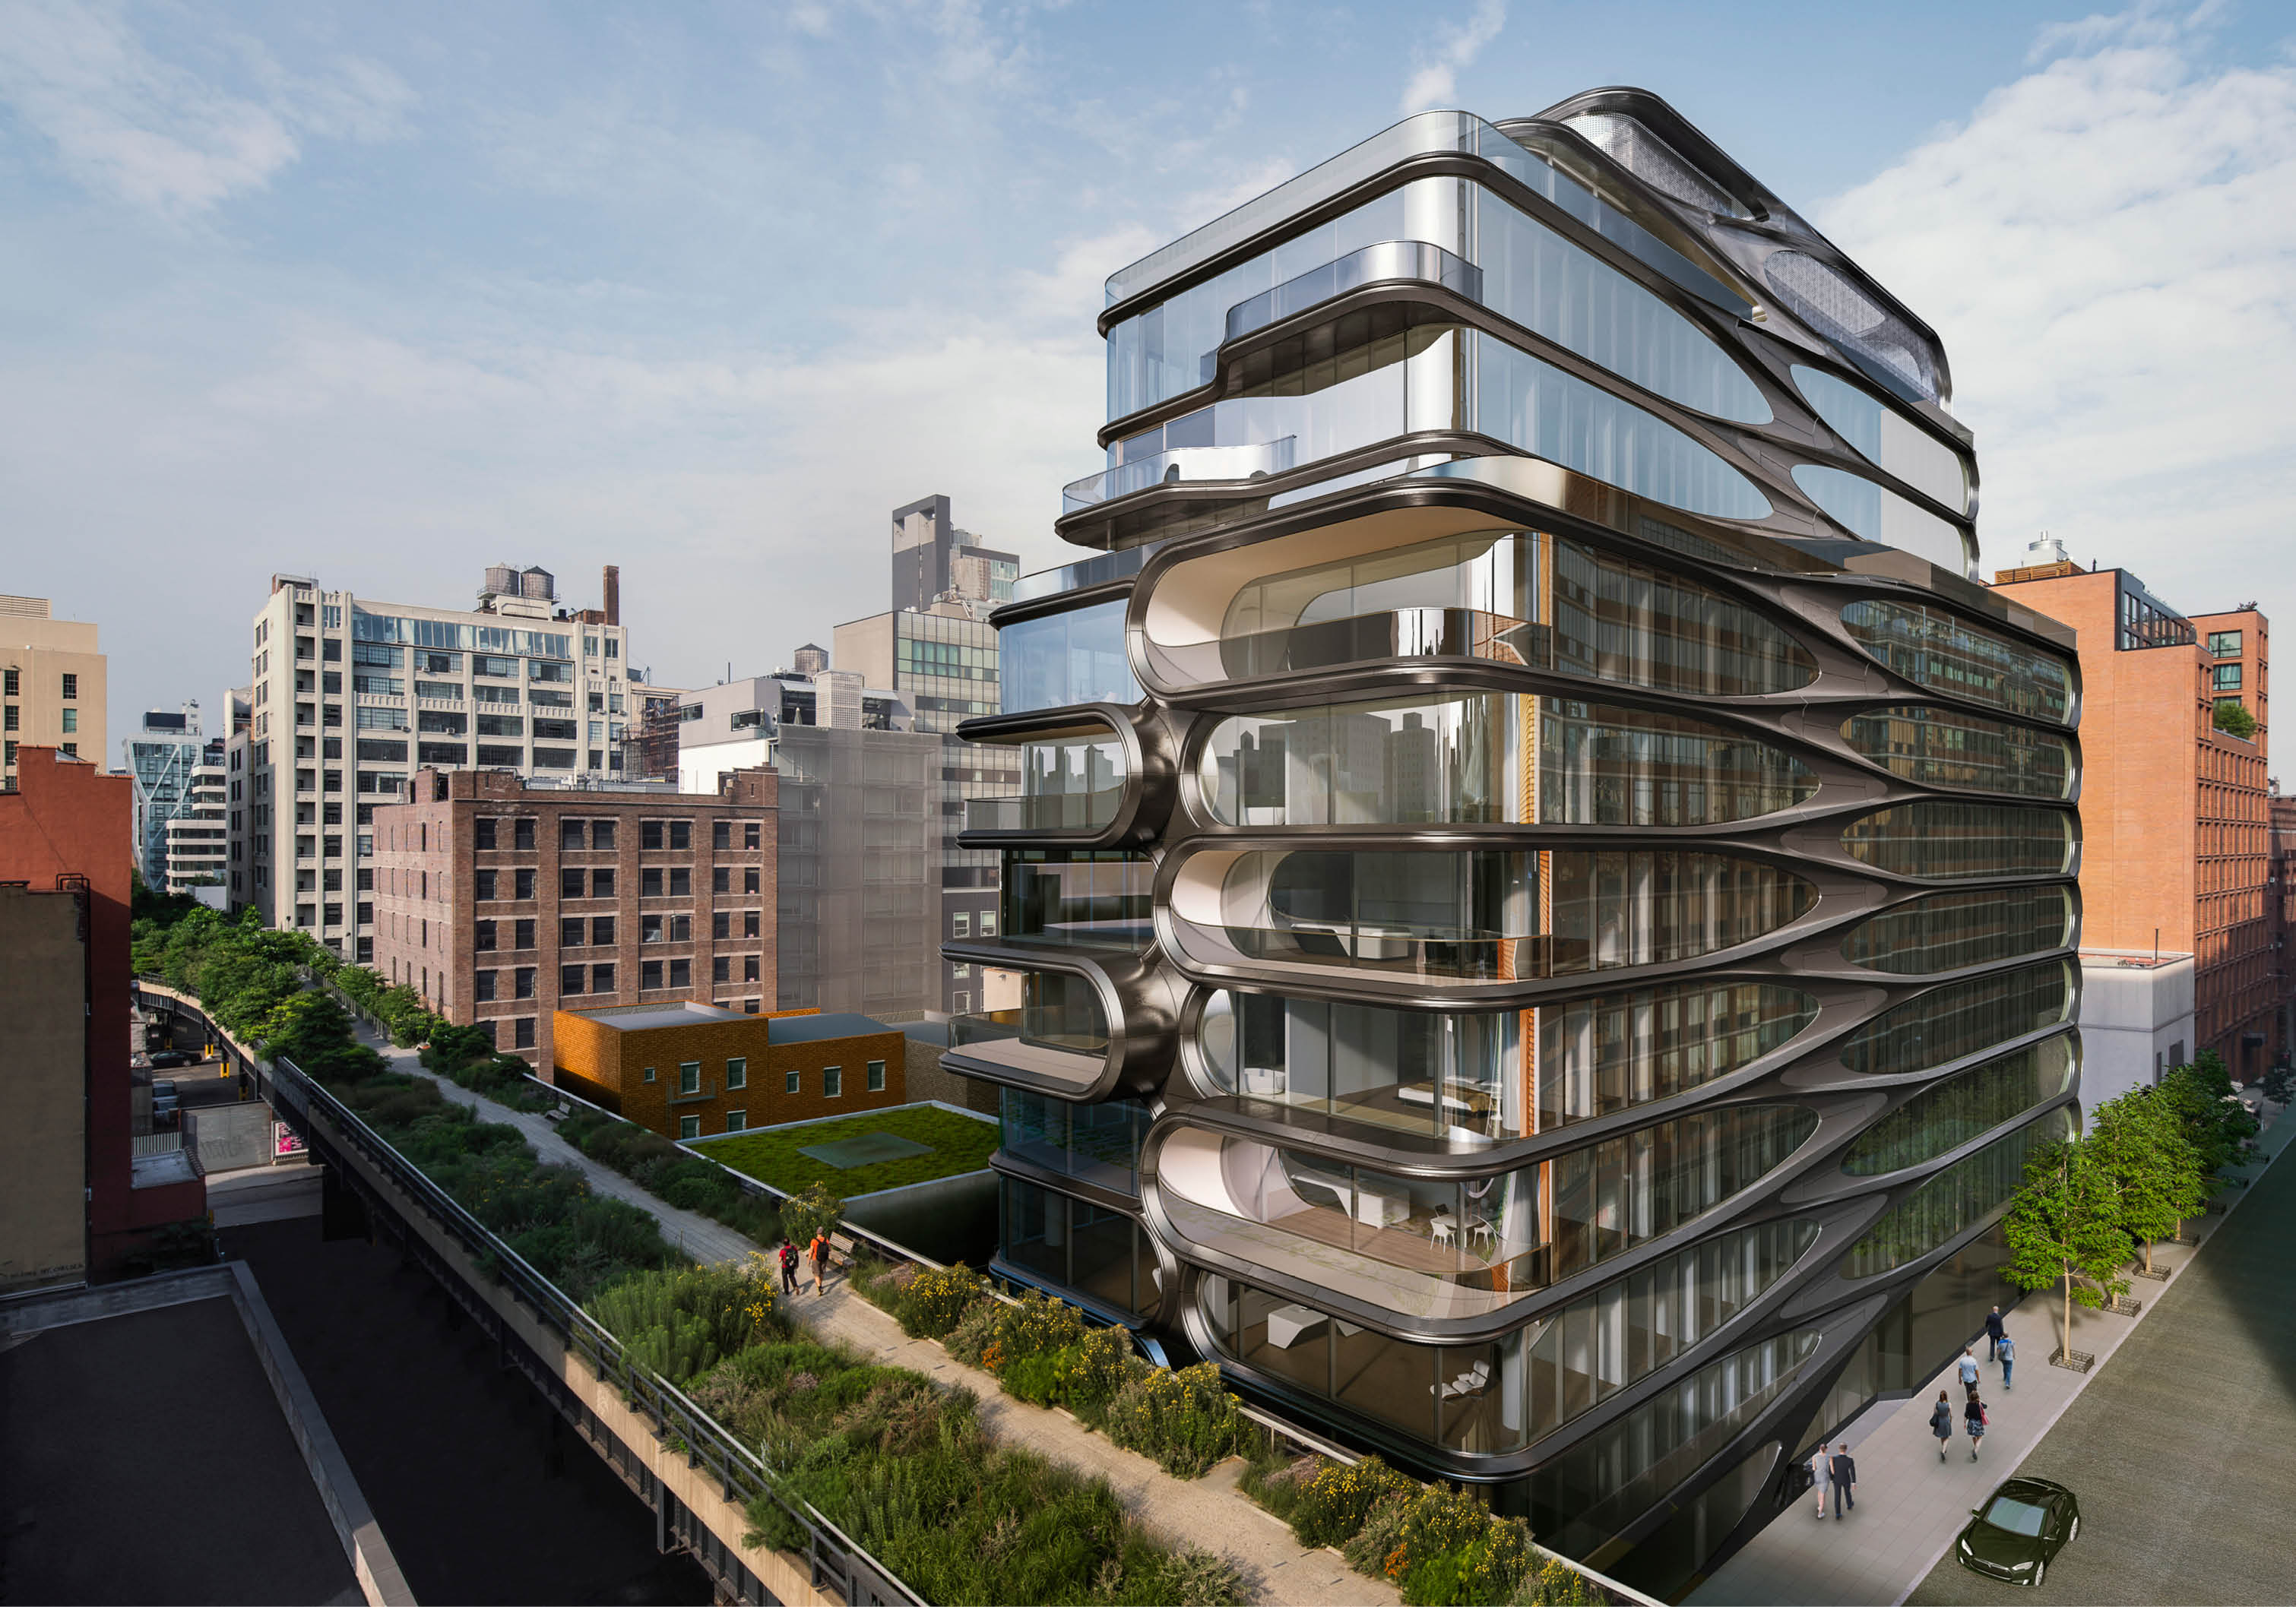 New Renderings Update For 11 Story Condo Project At 520 West 28th Street West Chelsea New